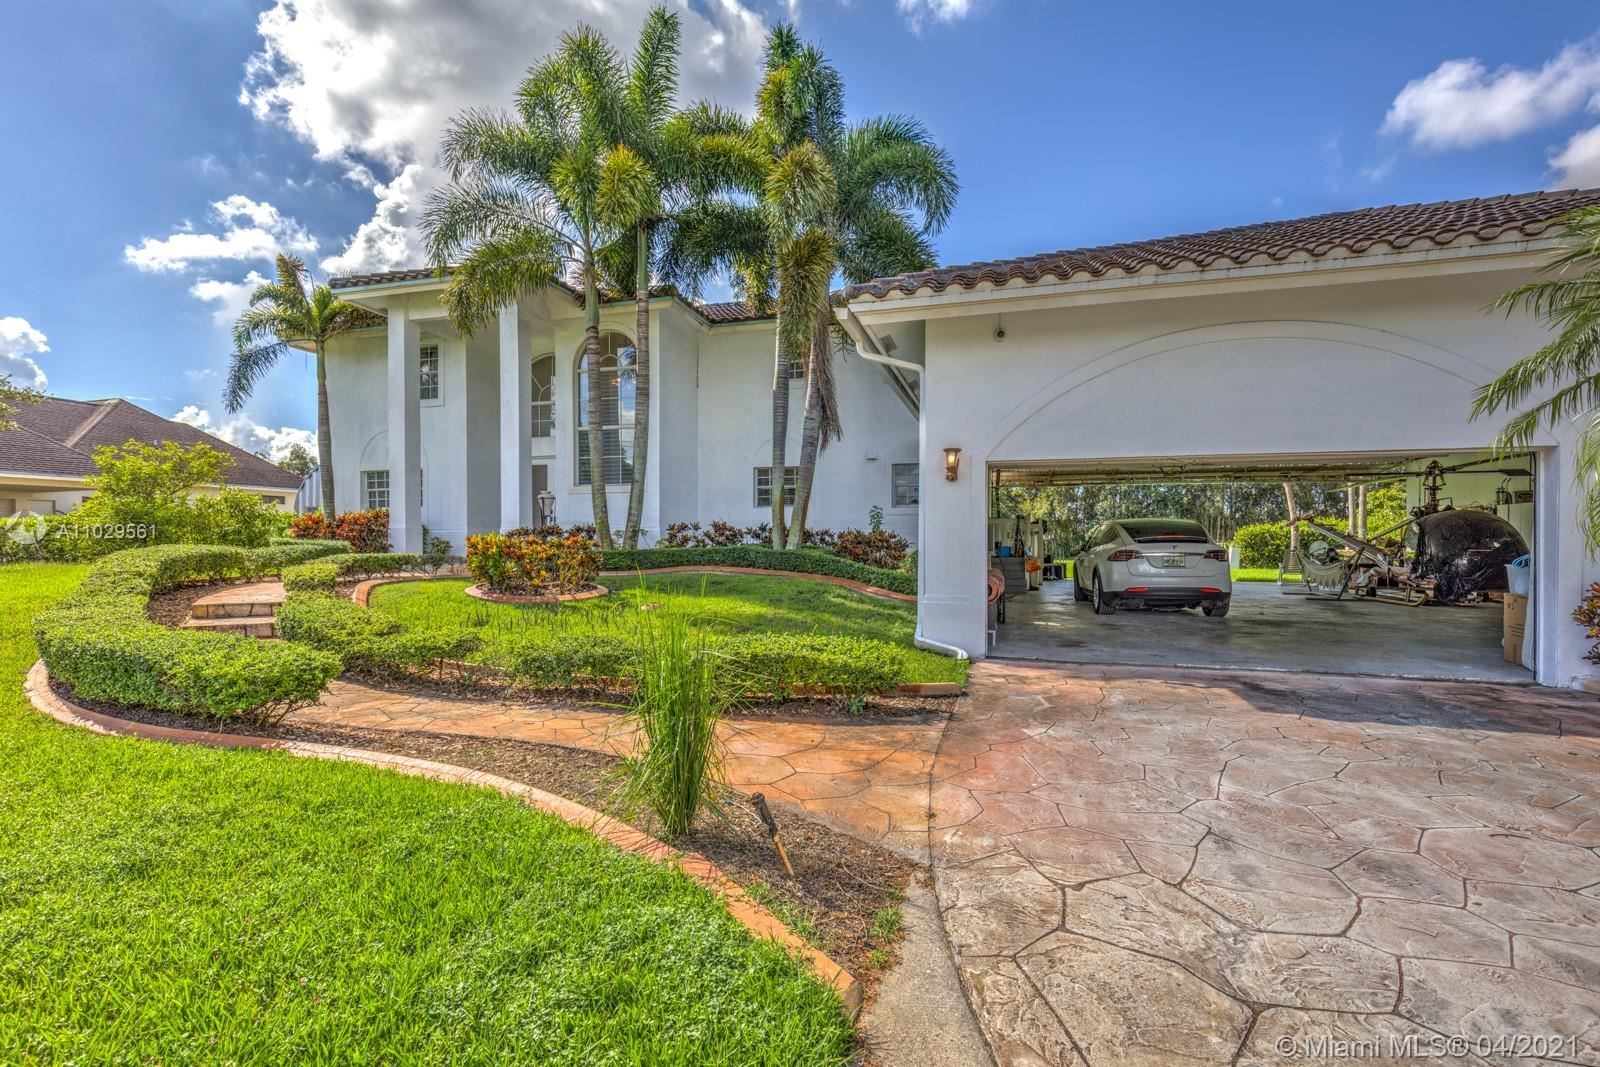 16880 SW 59th Ct, SouthWest Ranches, FL 33331 - #: A11029561